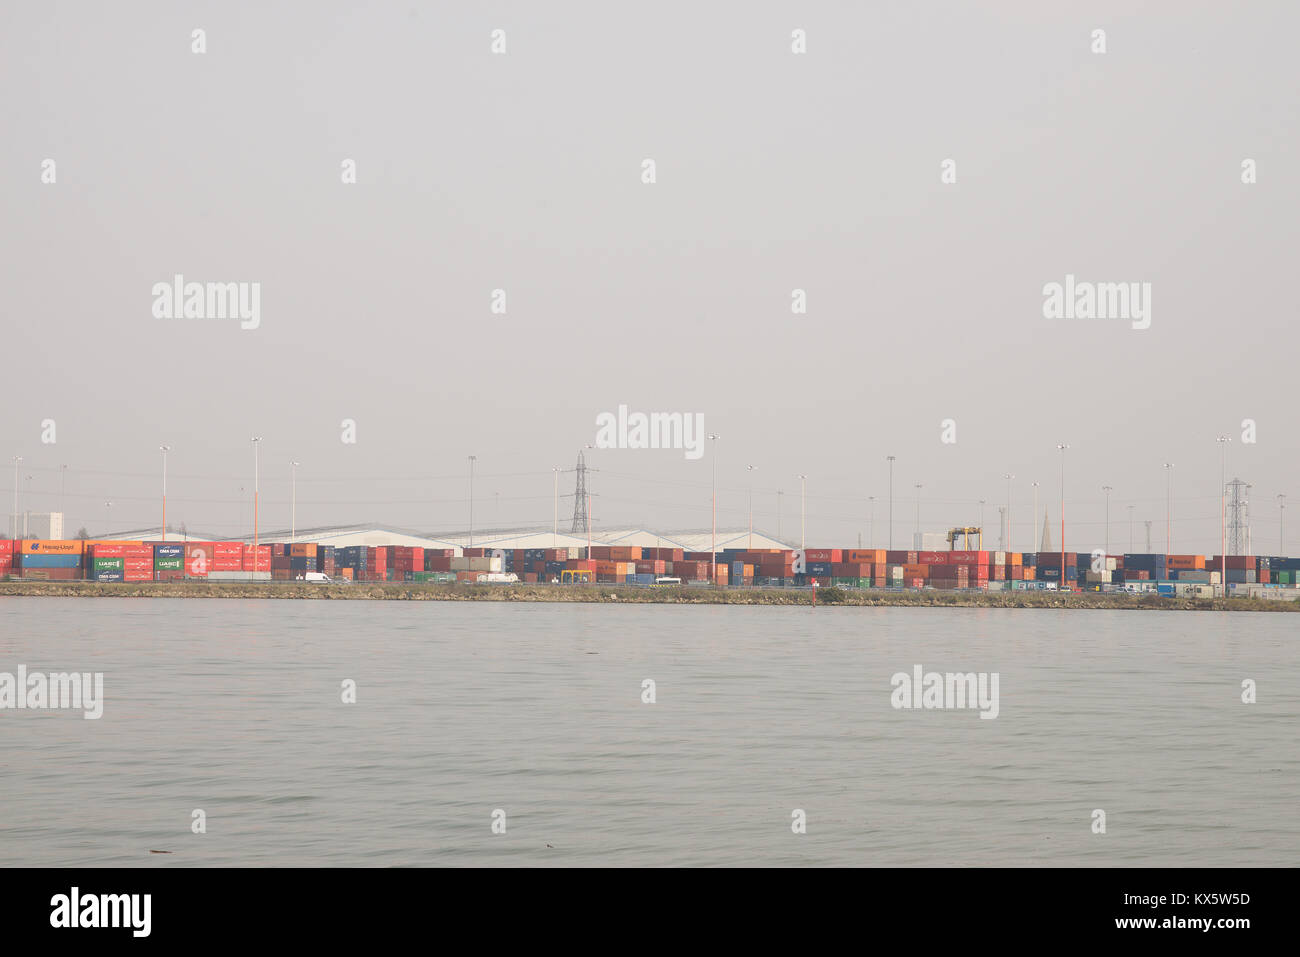 Containers at Southampton Docks - Stock Image